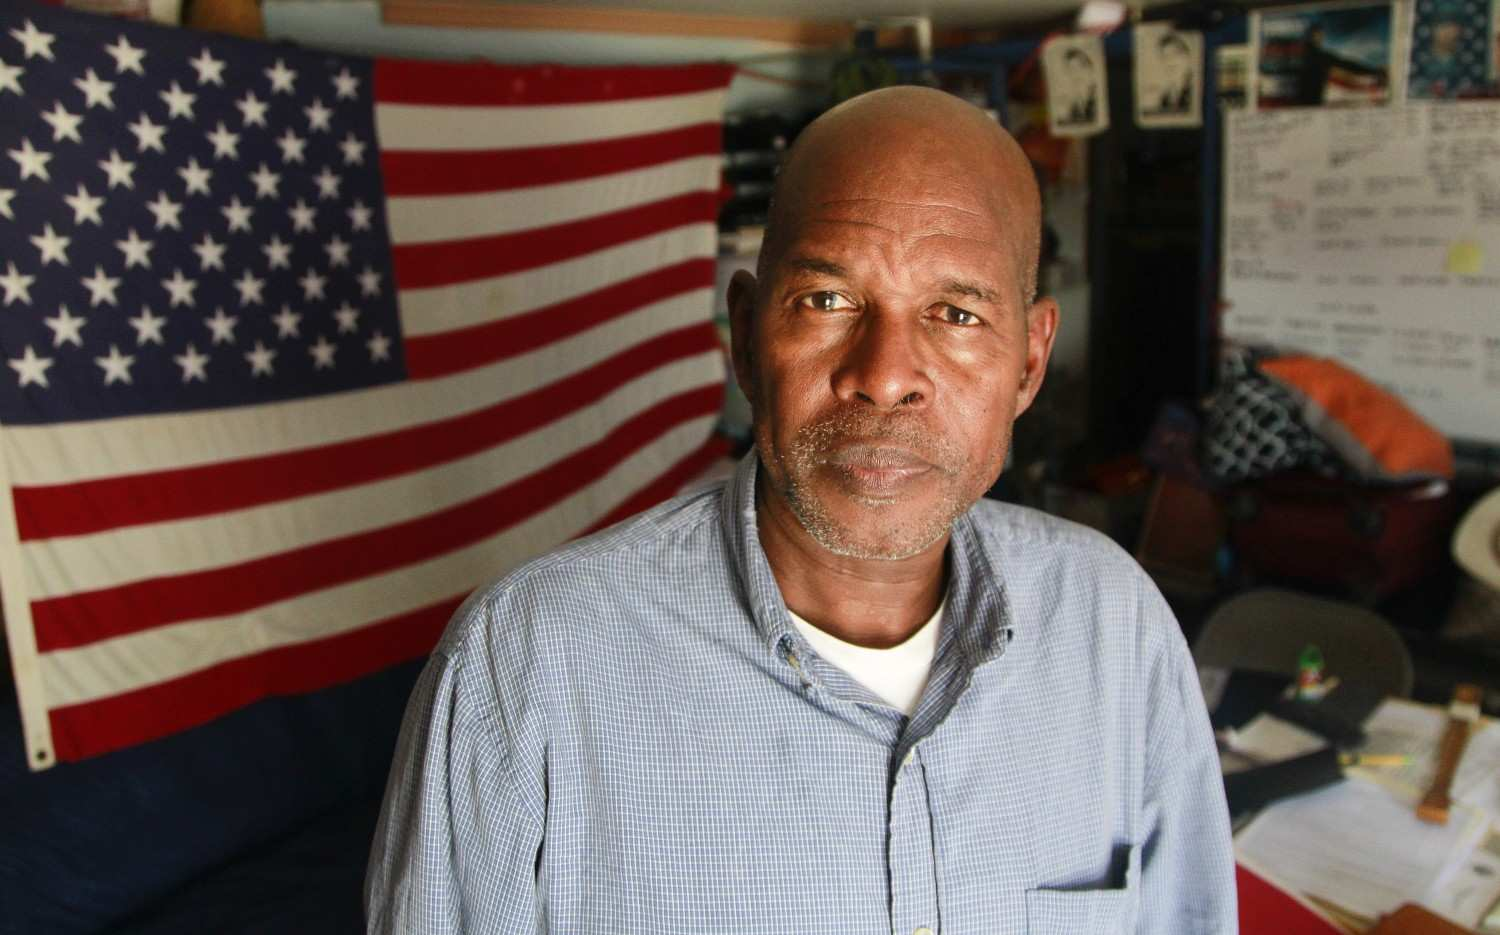 Exiled for 12 years, deported veteran finally wins U.S. citizenship